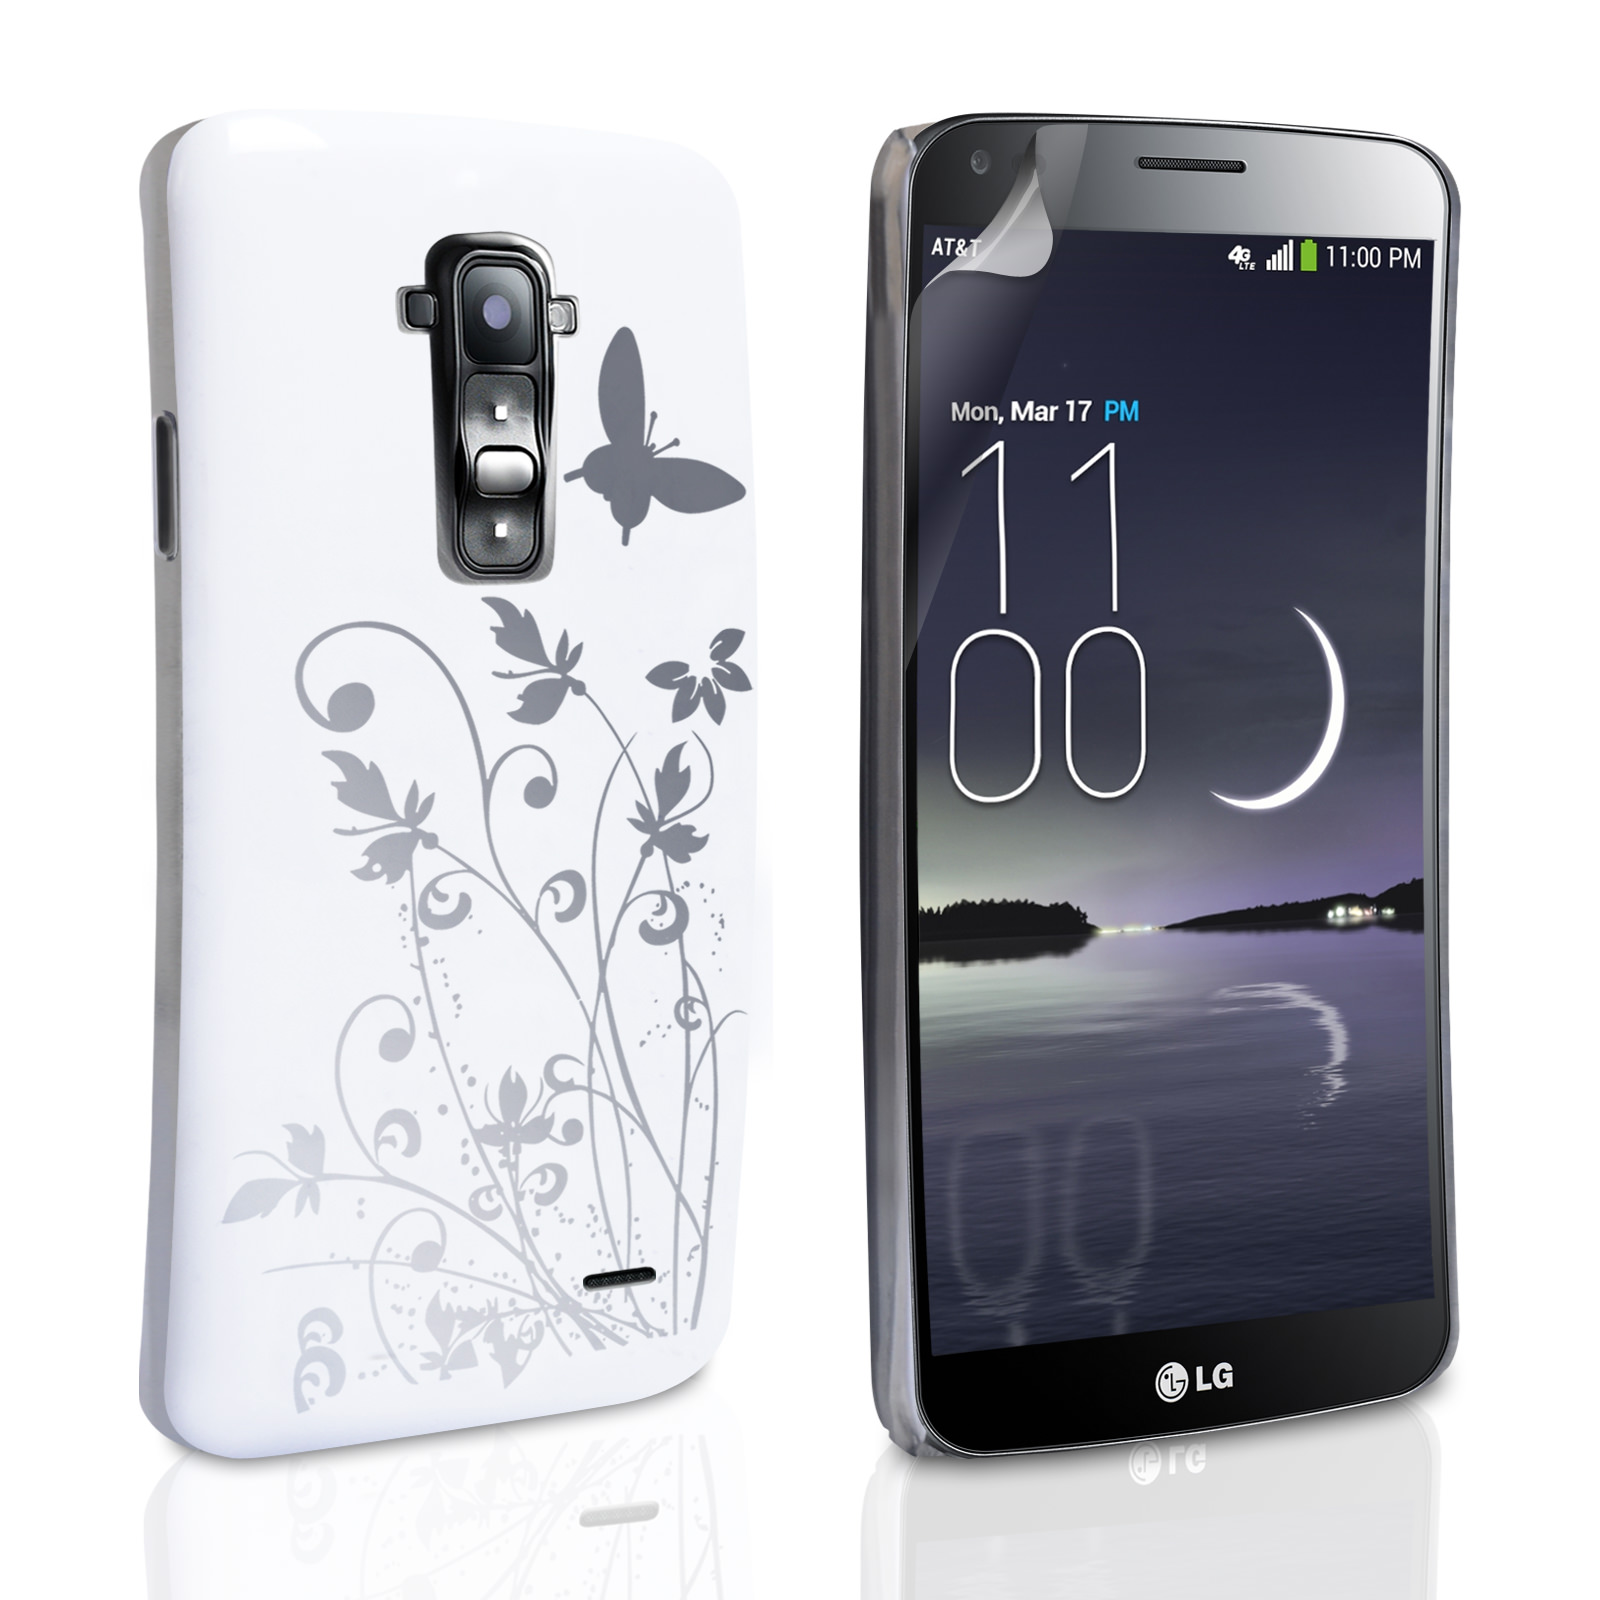 YouSave LG G Flex Floral Butterfly Hard Case - White-Silver